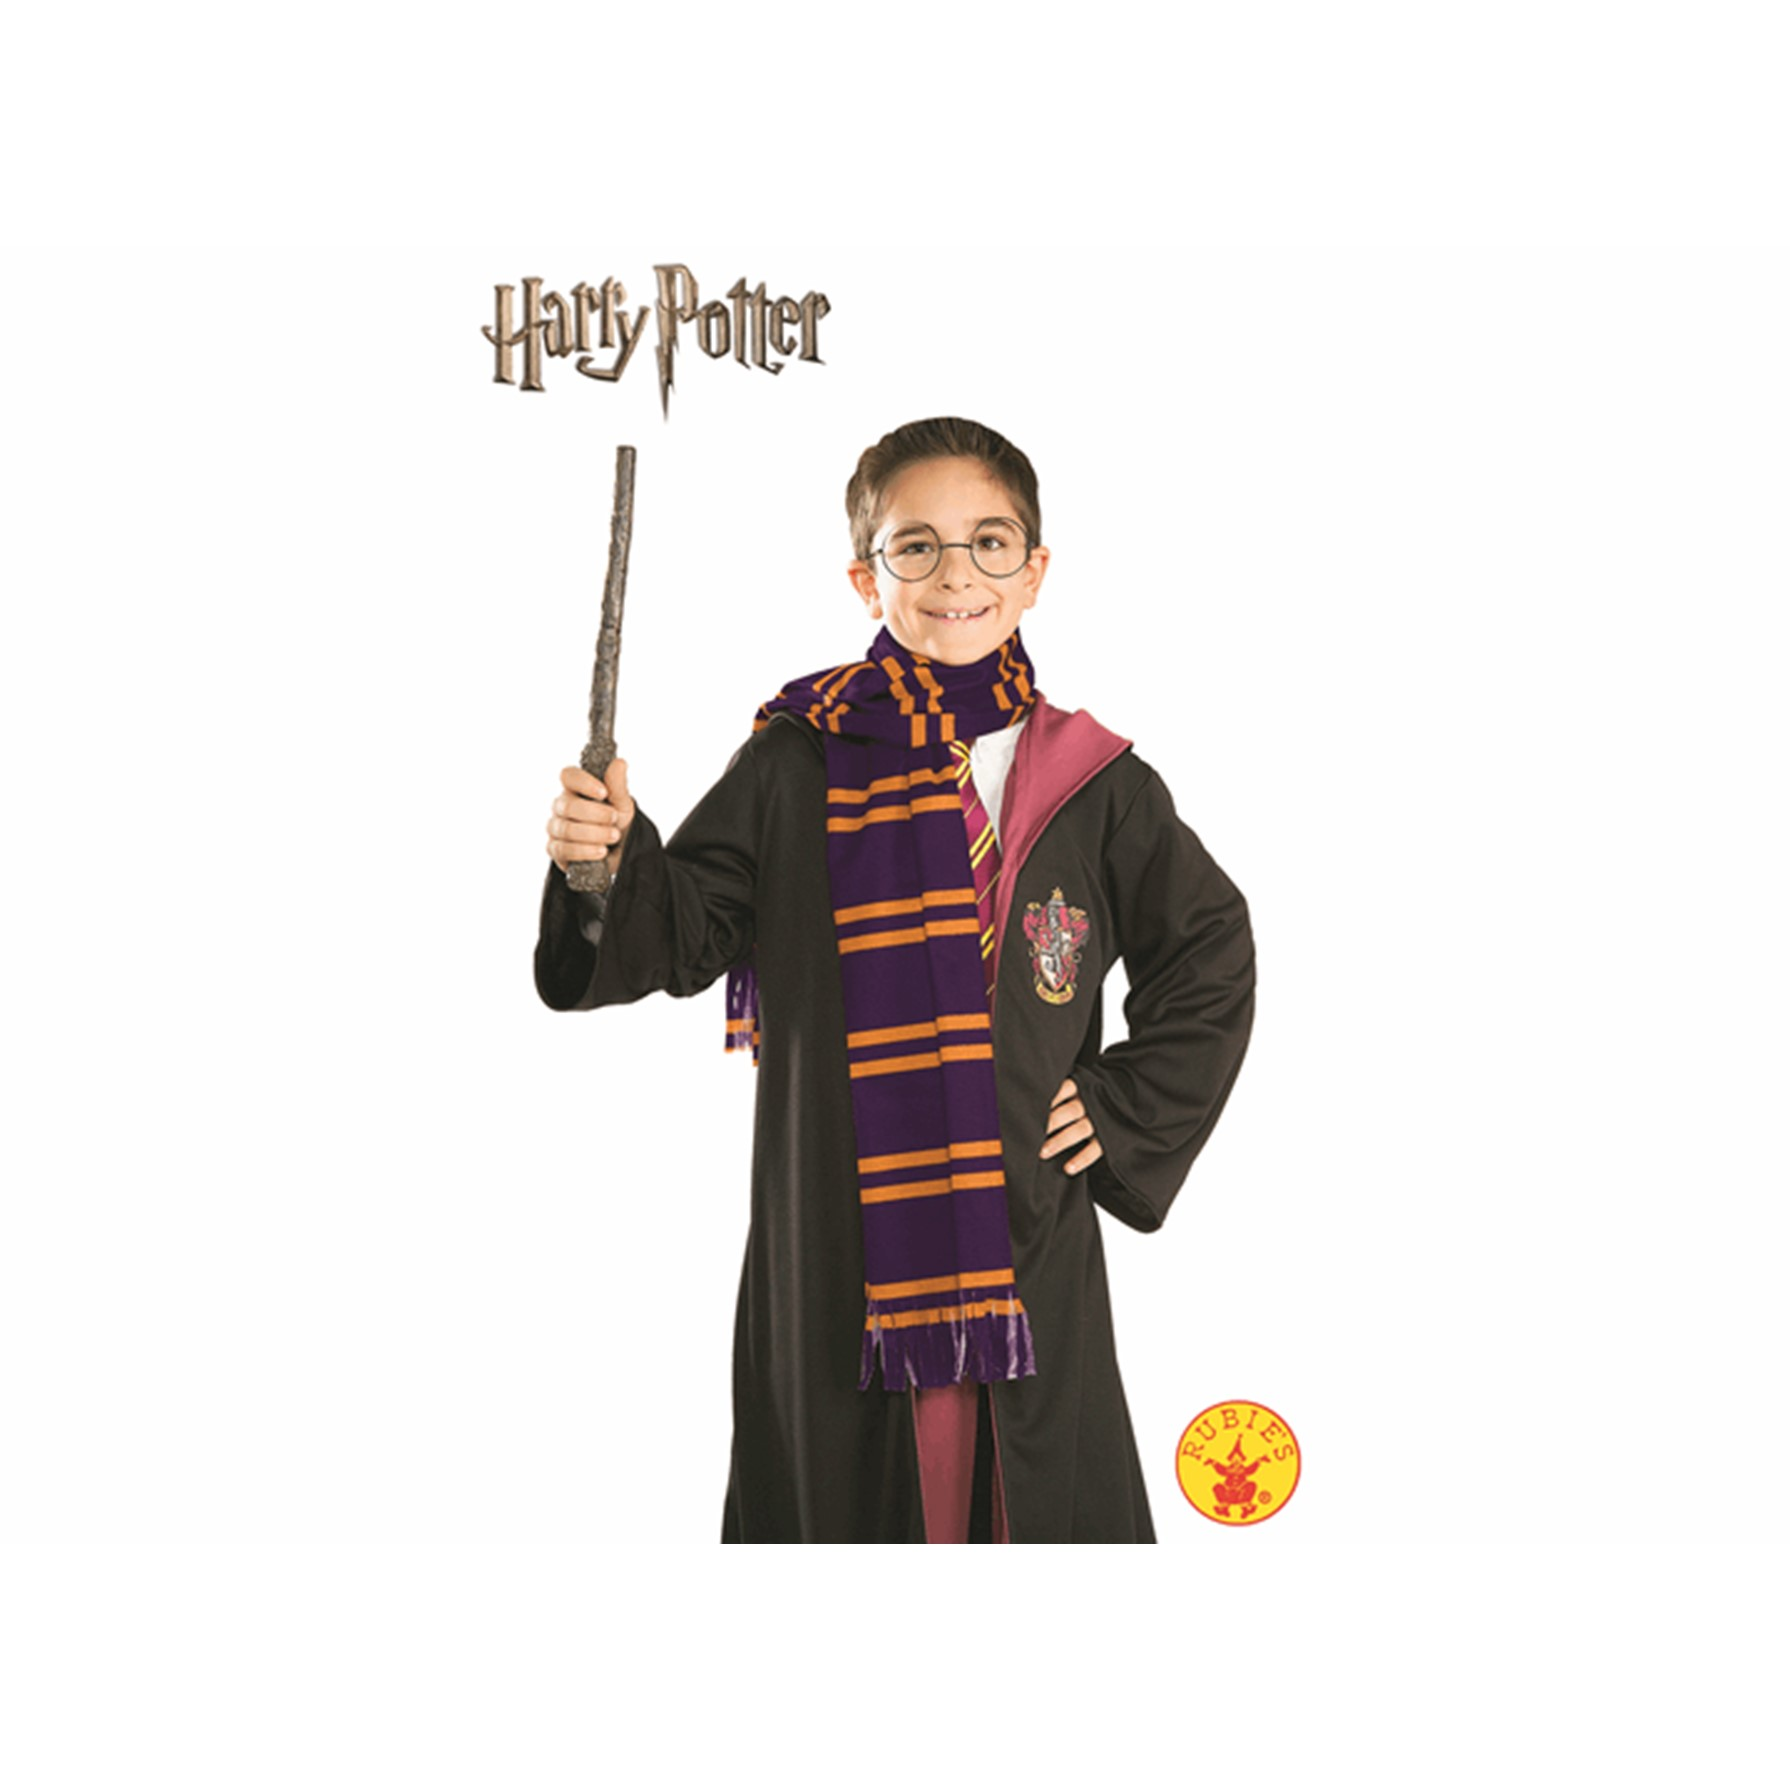 Harry Potter Bufanda infantil